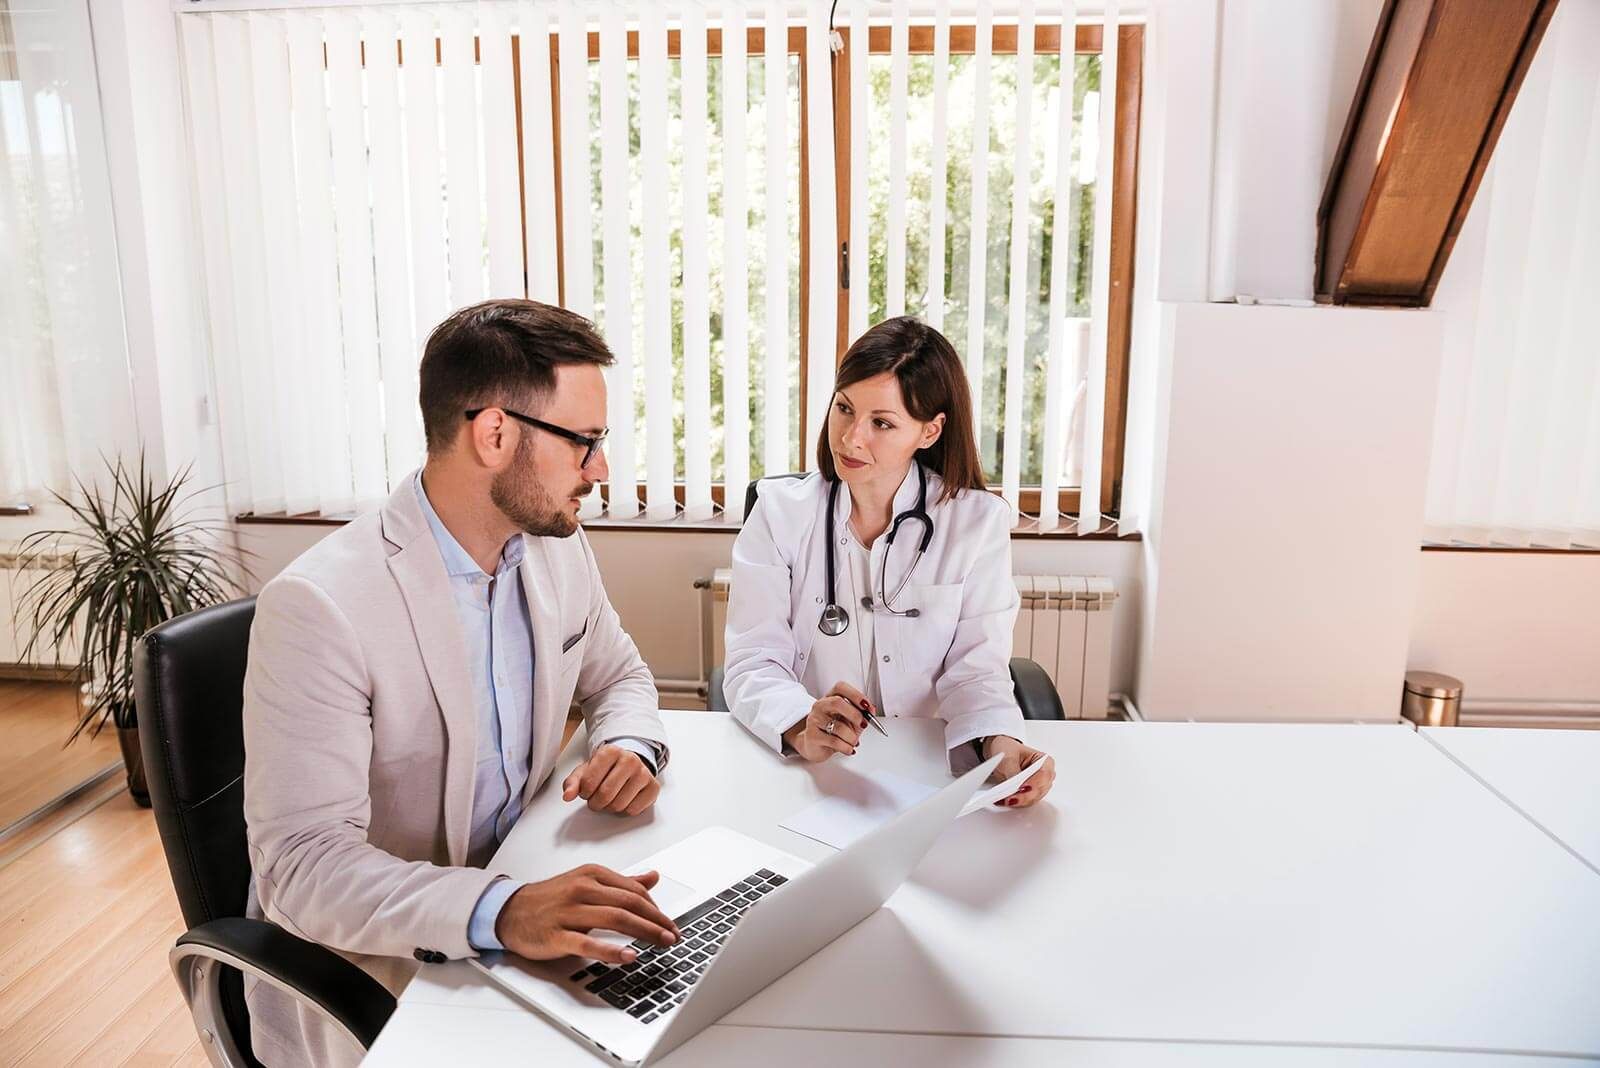 A healthcare administration manager meets with a staff doctor.